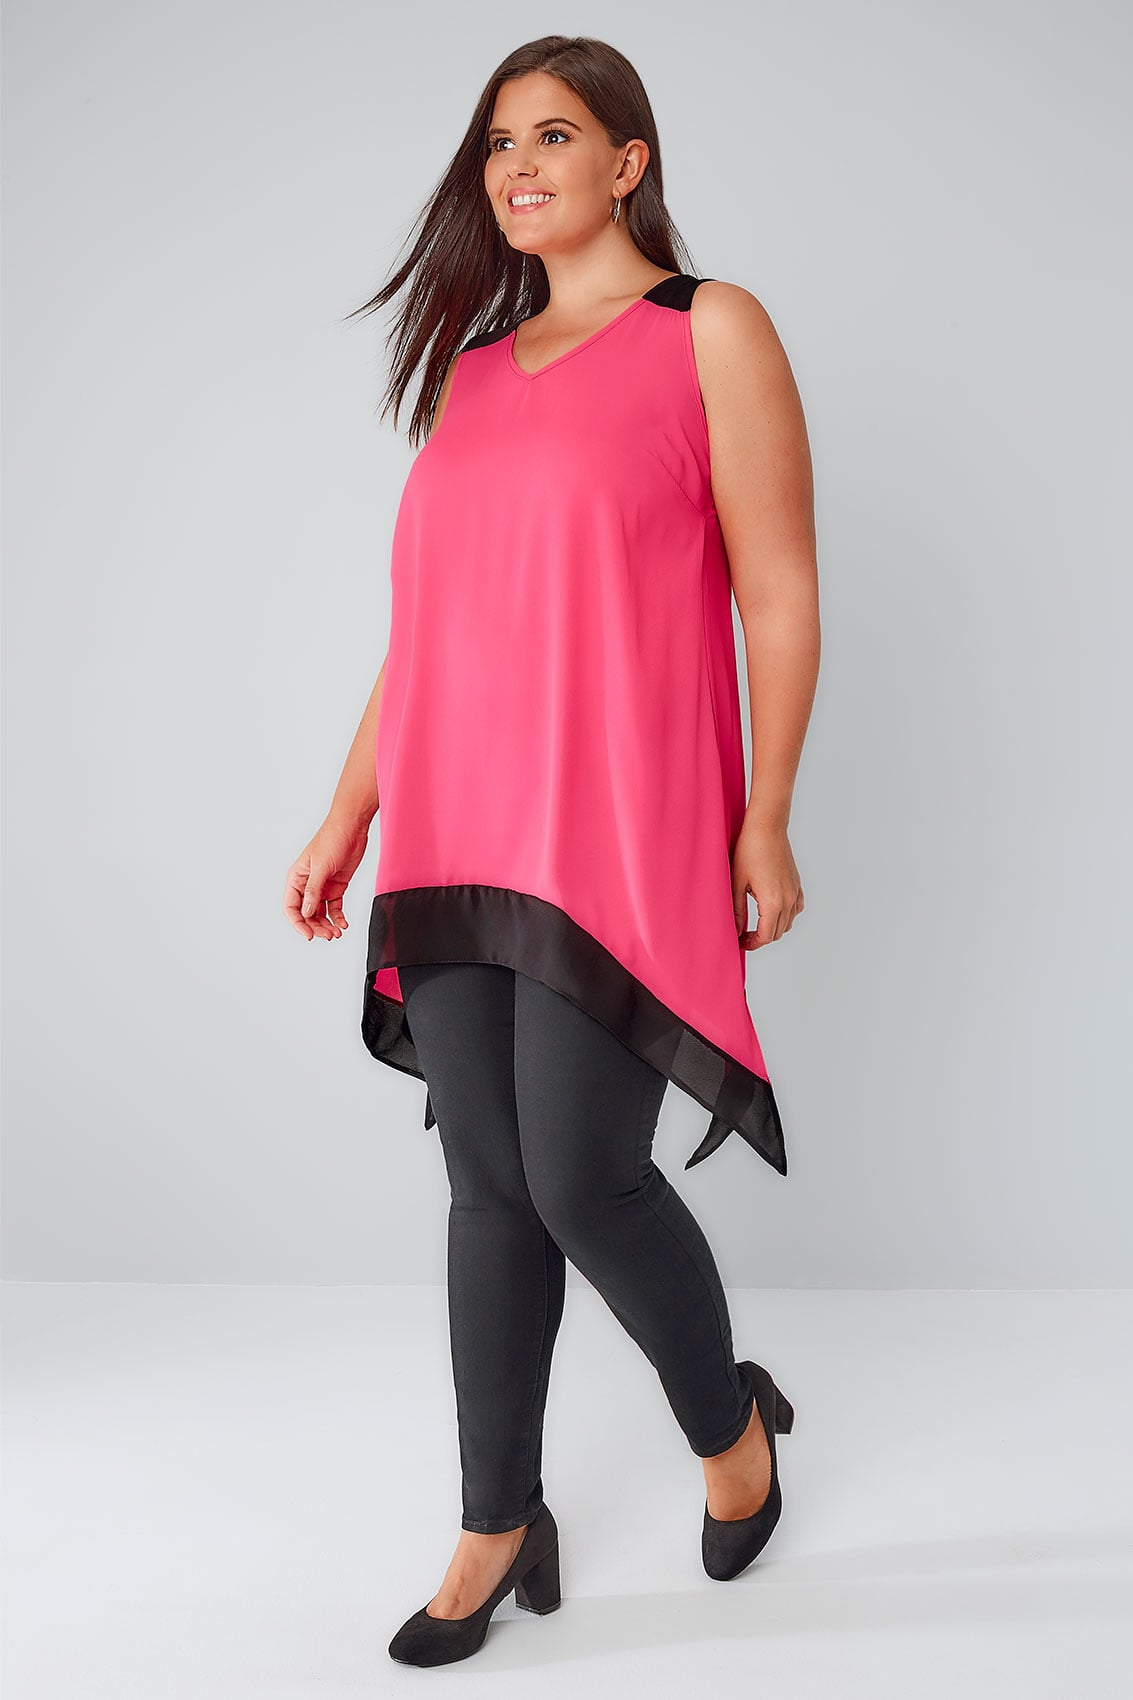 yours london black pink colour block sleeveless top with hanky hem plus size 16 to 32. Black Bedroom Furniture Sets. Home Design Ideas